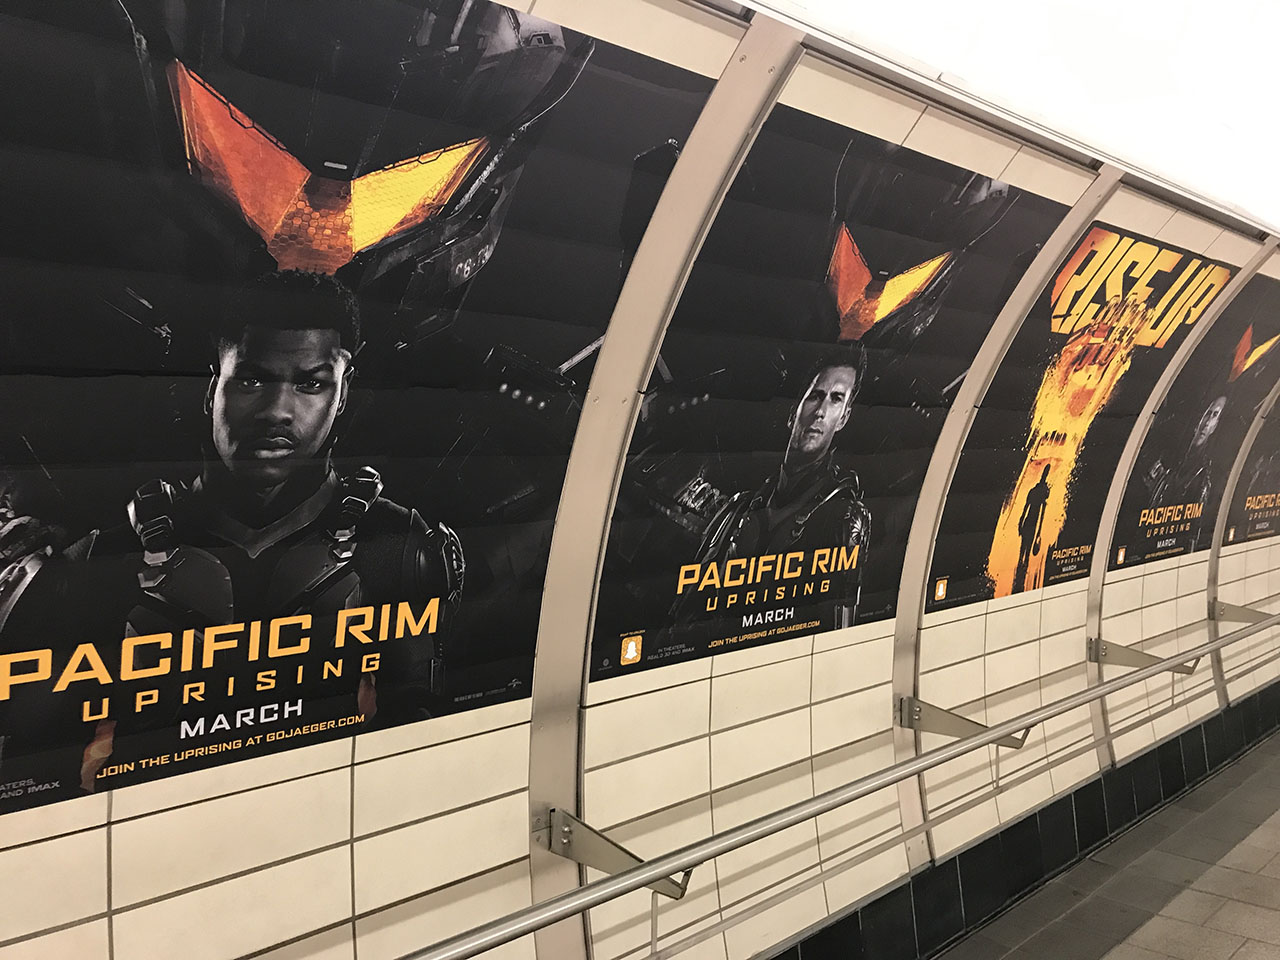 'Pacific Rim Uprising' in the NYC Subway